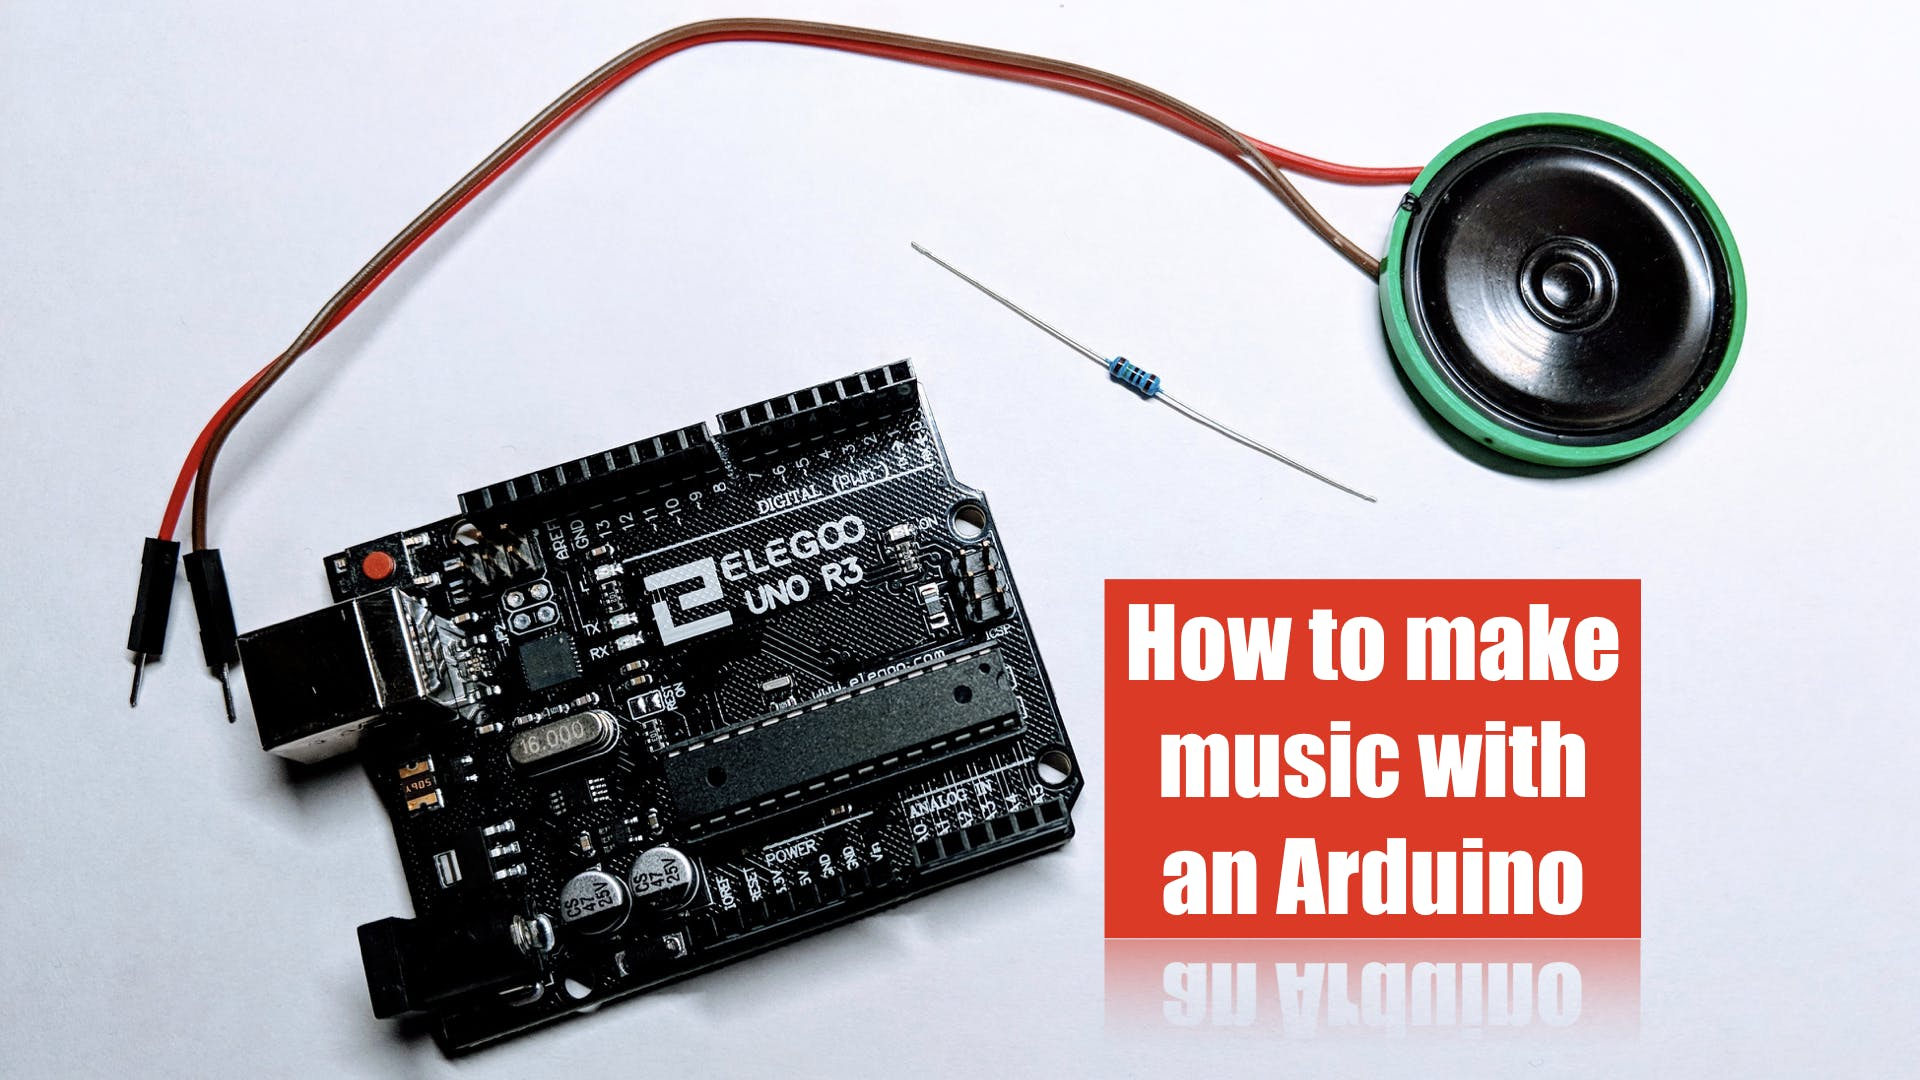 How to make music with an Arduino